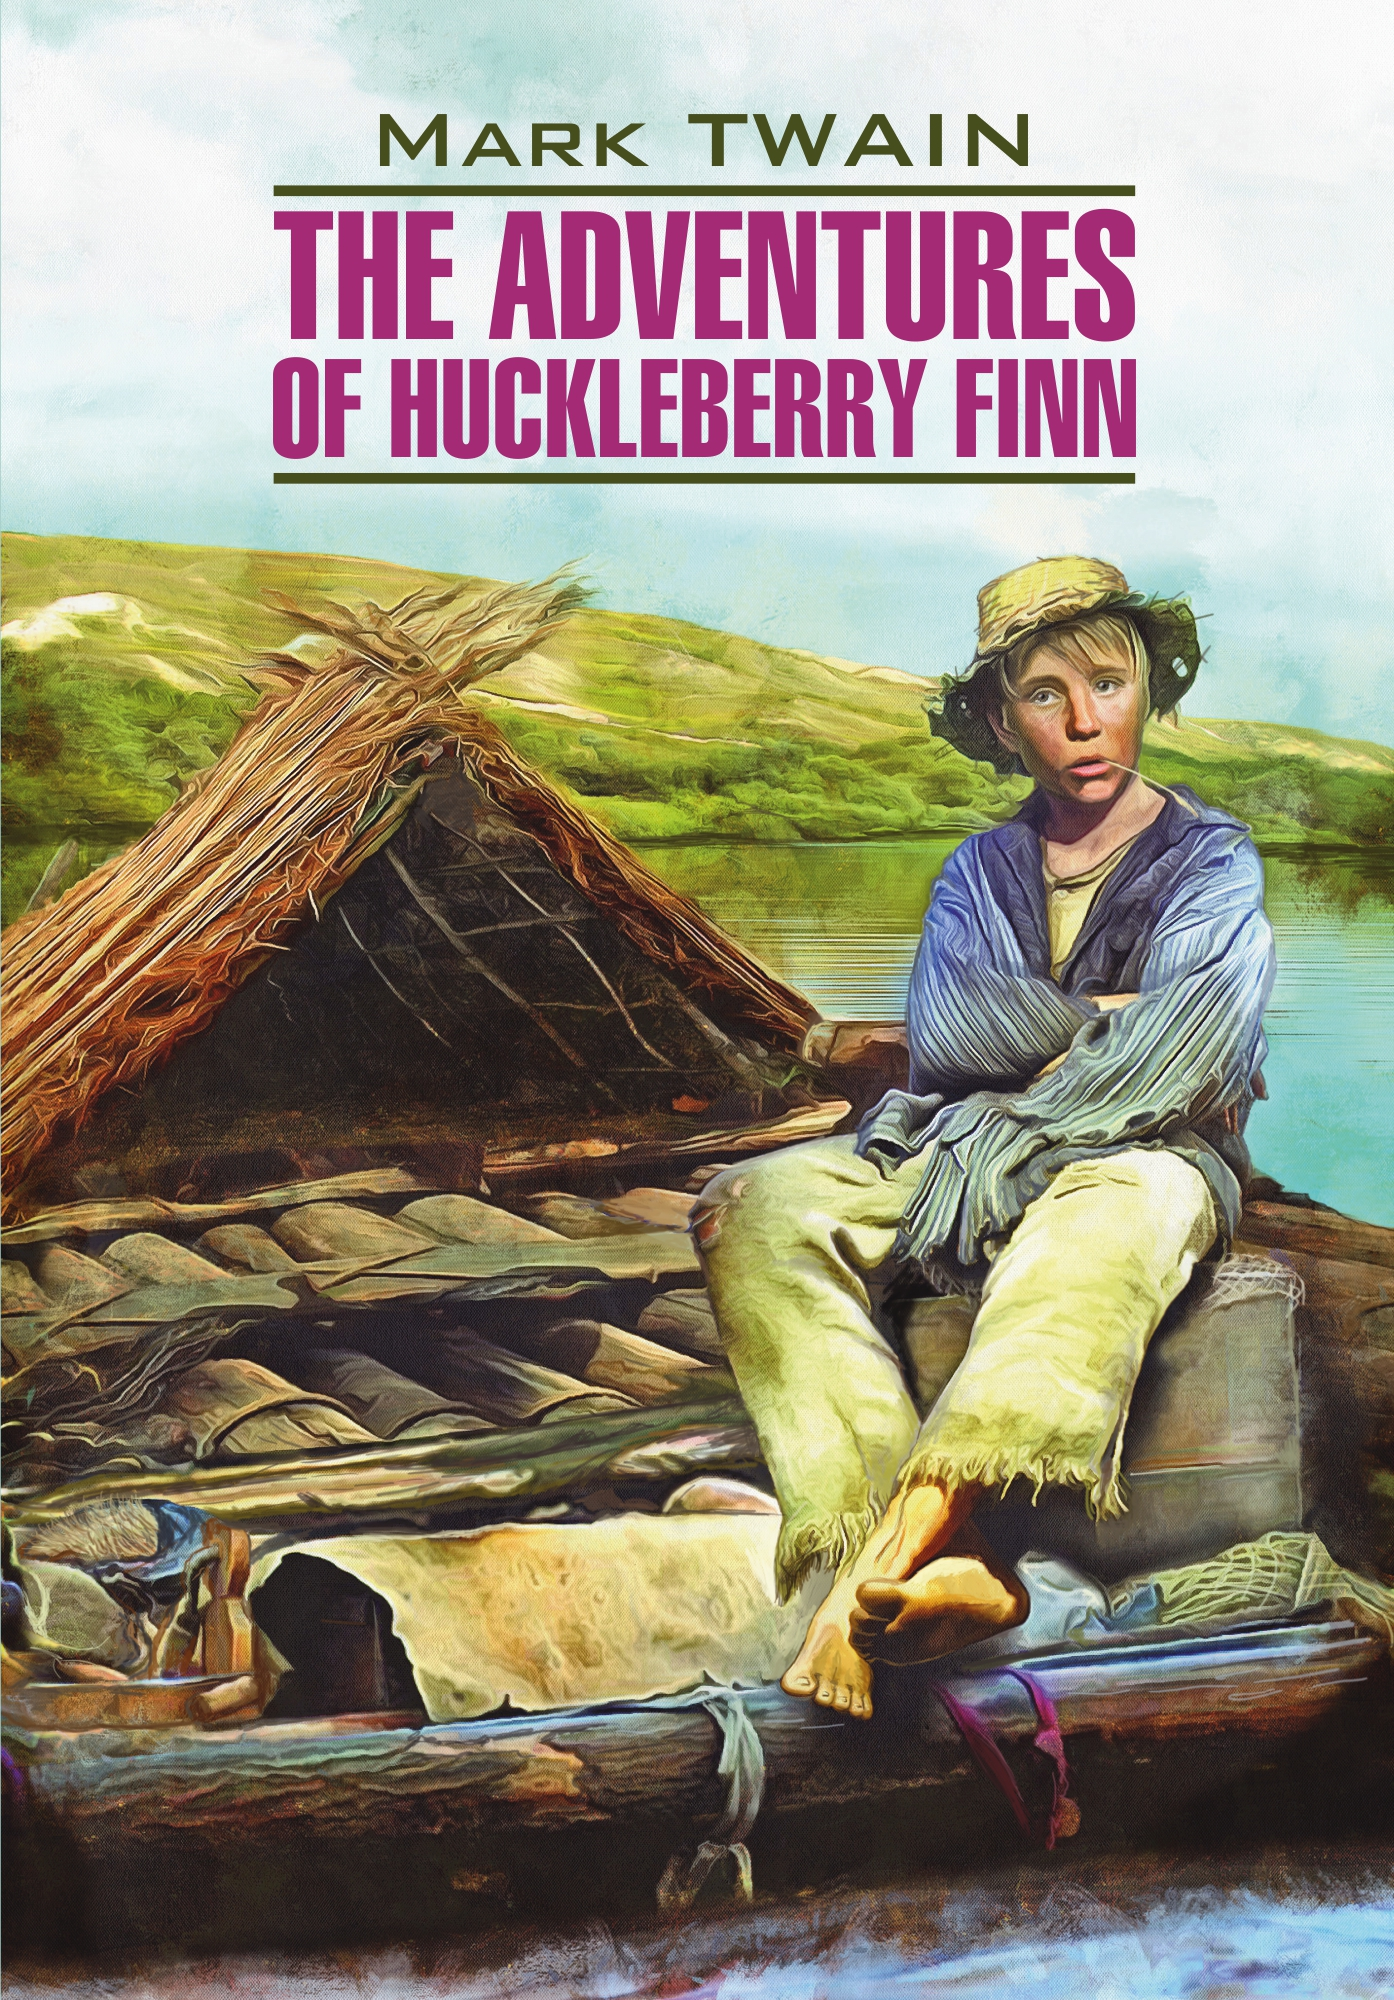 Марк Твен The Adventures of Huckleberry Finn / Приключения Гекльберри Финна. Книга для чтения на английском языке 2 colors infant children kids baby toilet training non slip folding potty trainer safety seat chair step with adjustable ladder